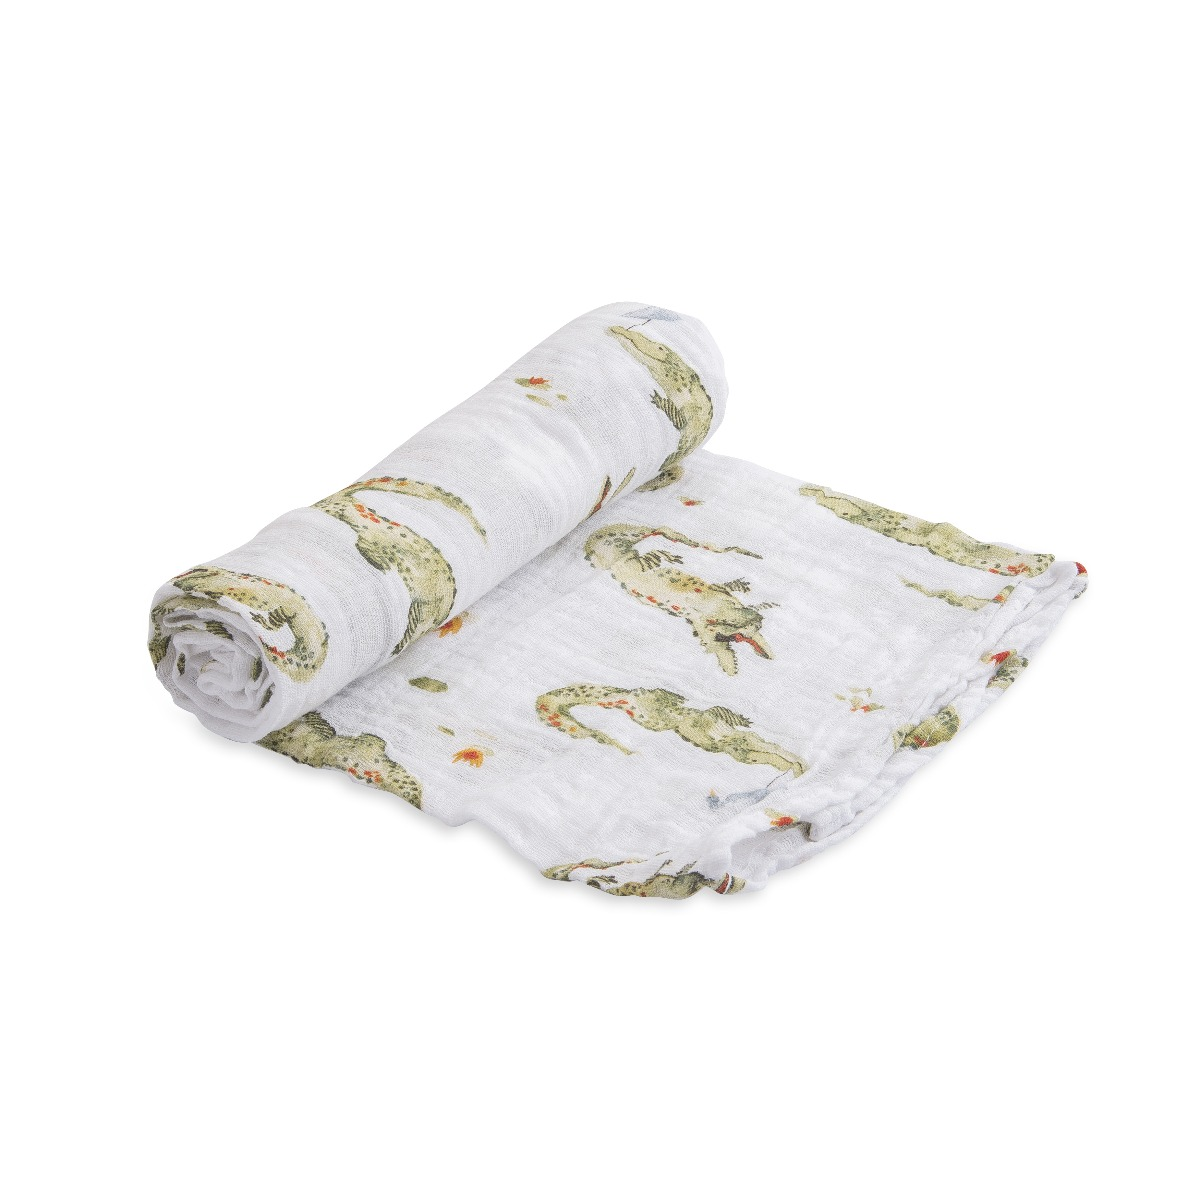 Little Unicorn Cotton Muslin Swaddle Gators